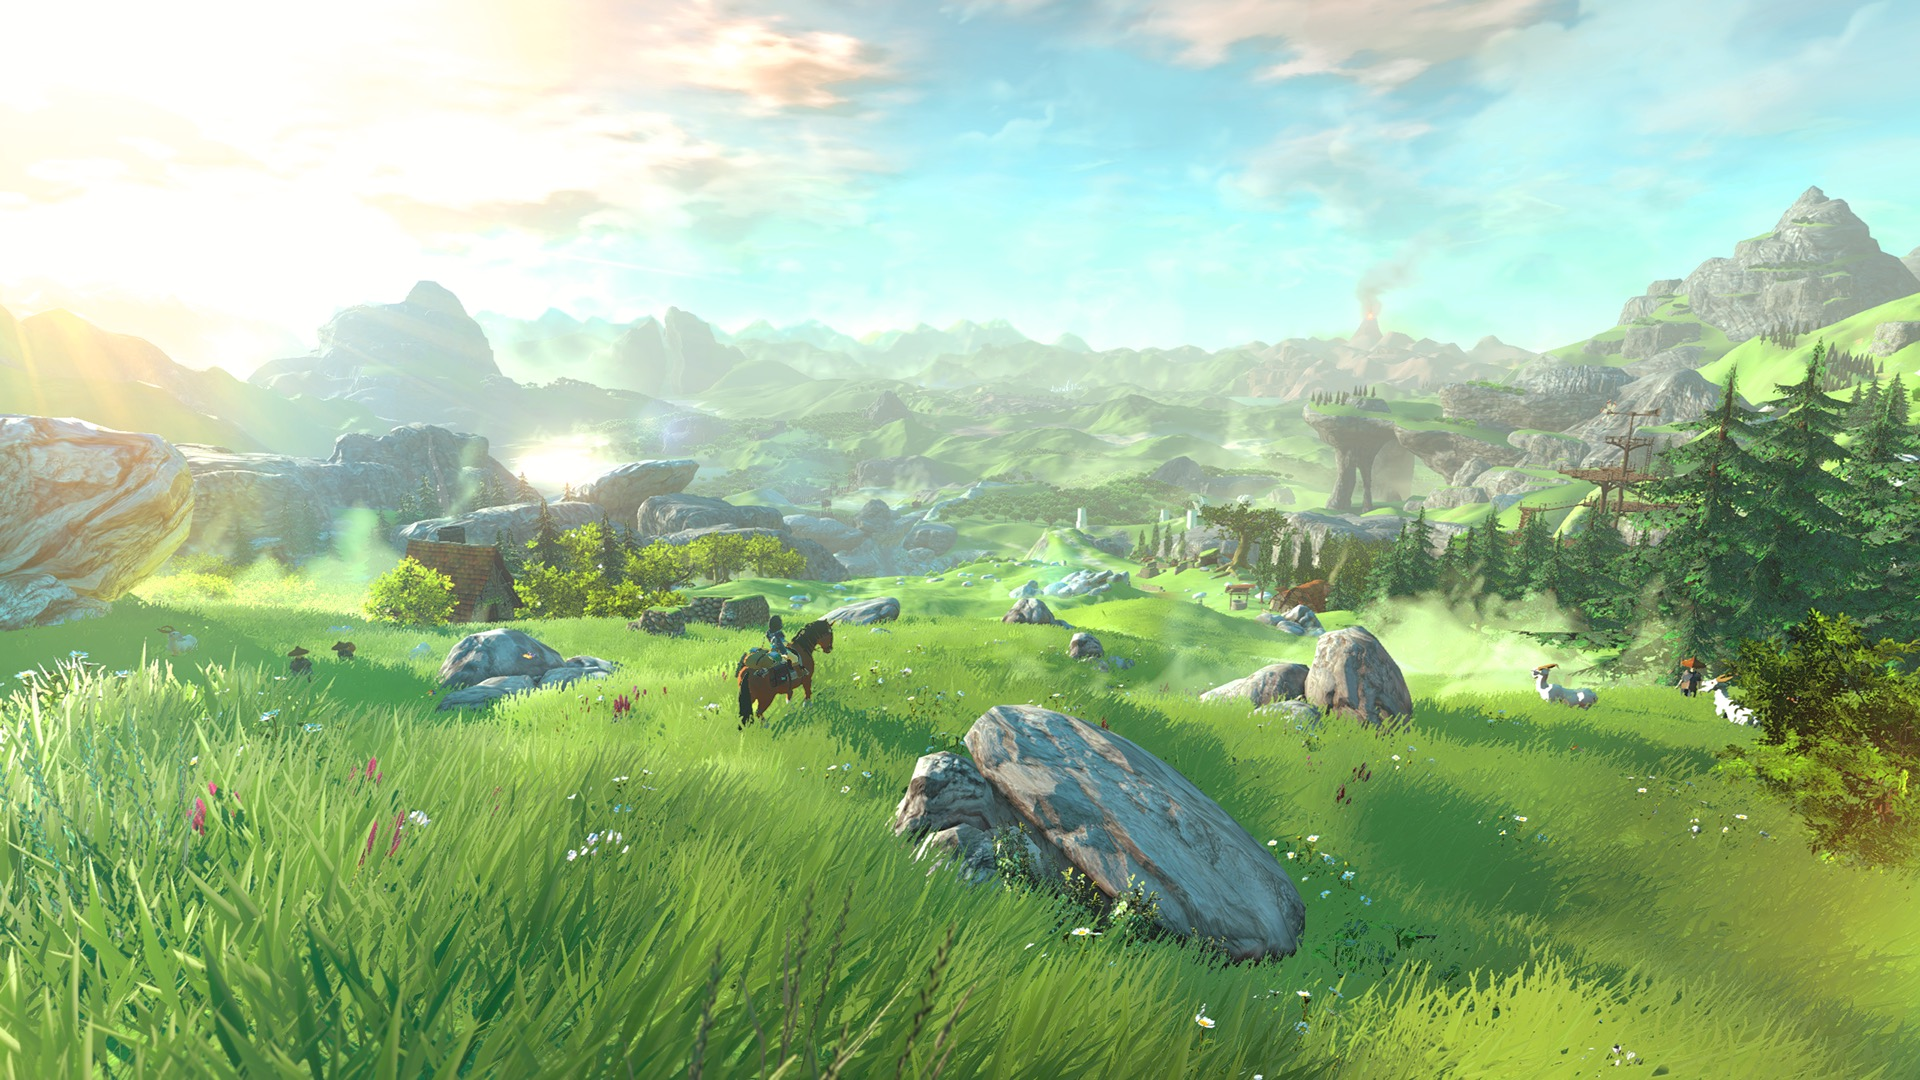 The Legend of Zelda Wii U Slated for 2015